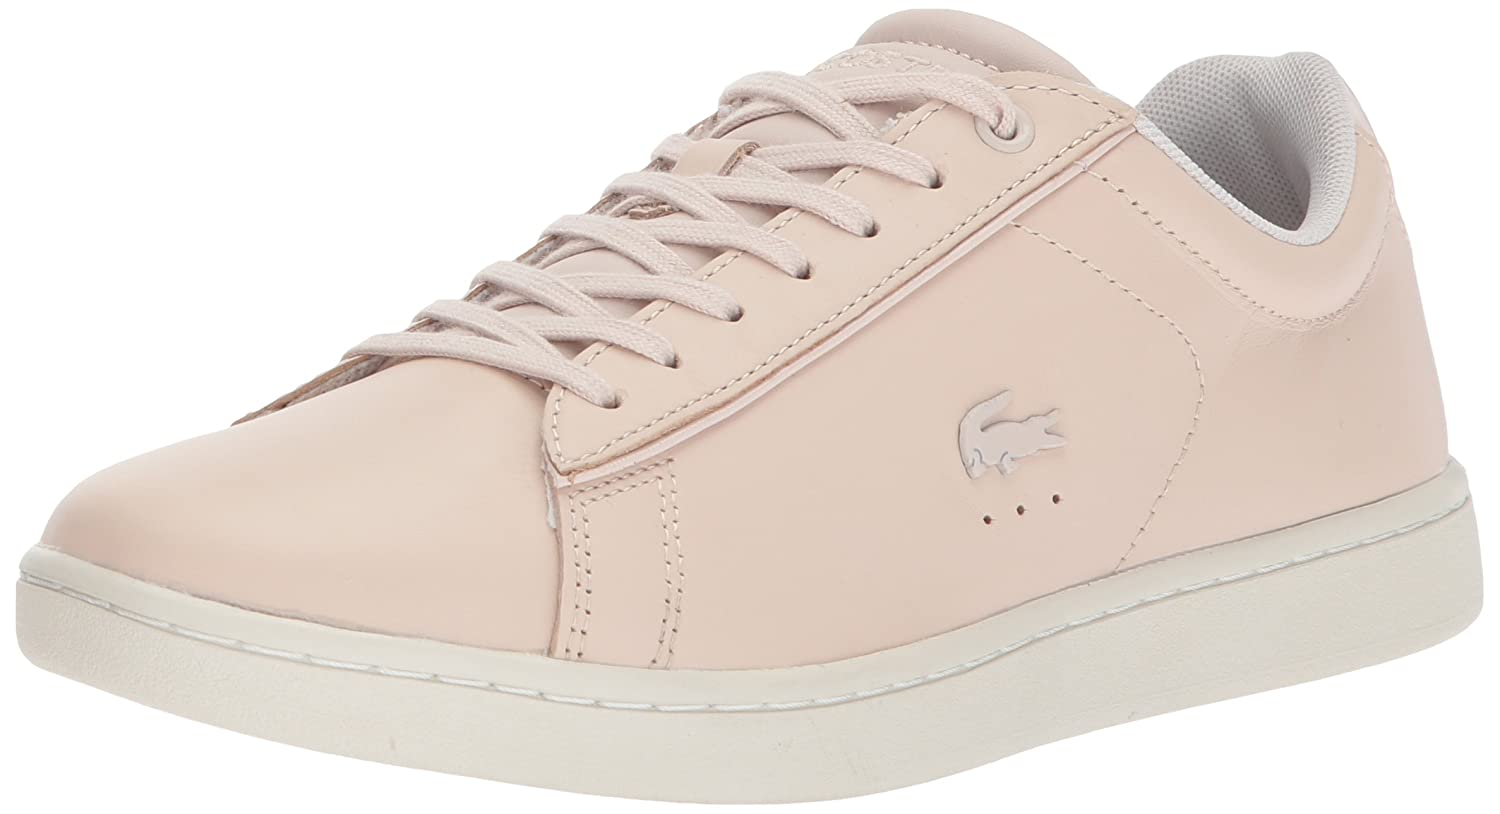 Amazon.com   Lacoste Women s Carnaby Evo Sneaker   Fashion Sneakers f0c5ccd04a